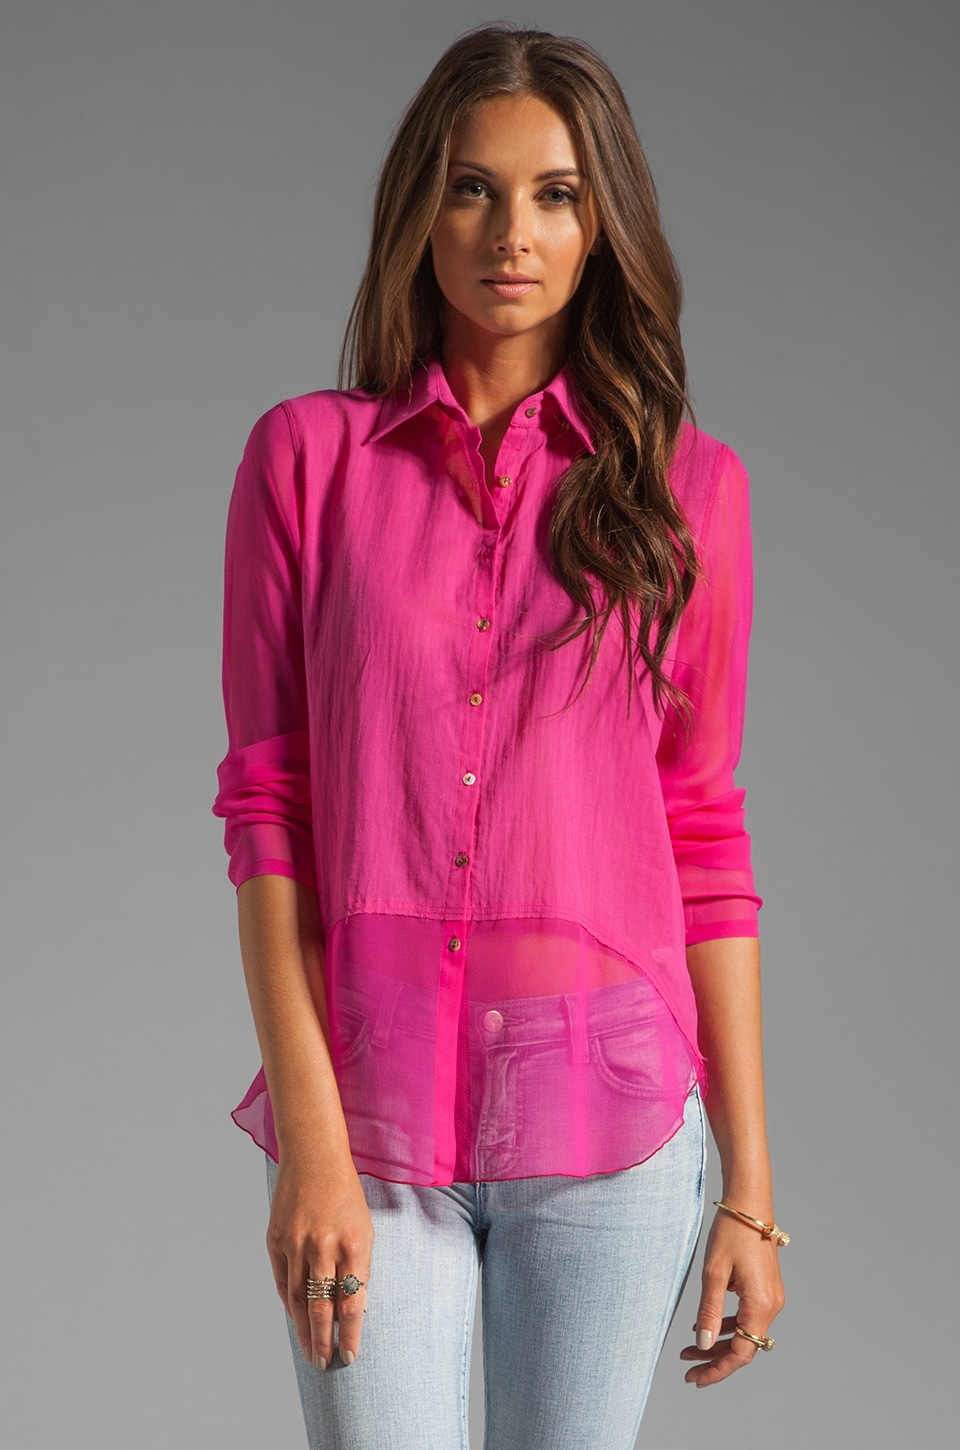 Bailey 44 Skeet Shooting Shirt in Pink